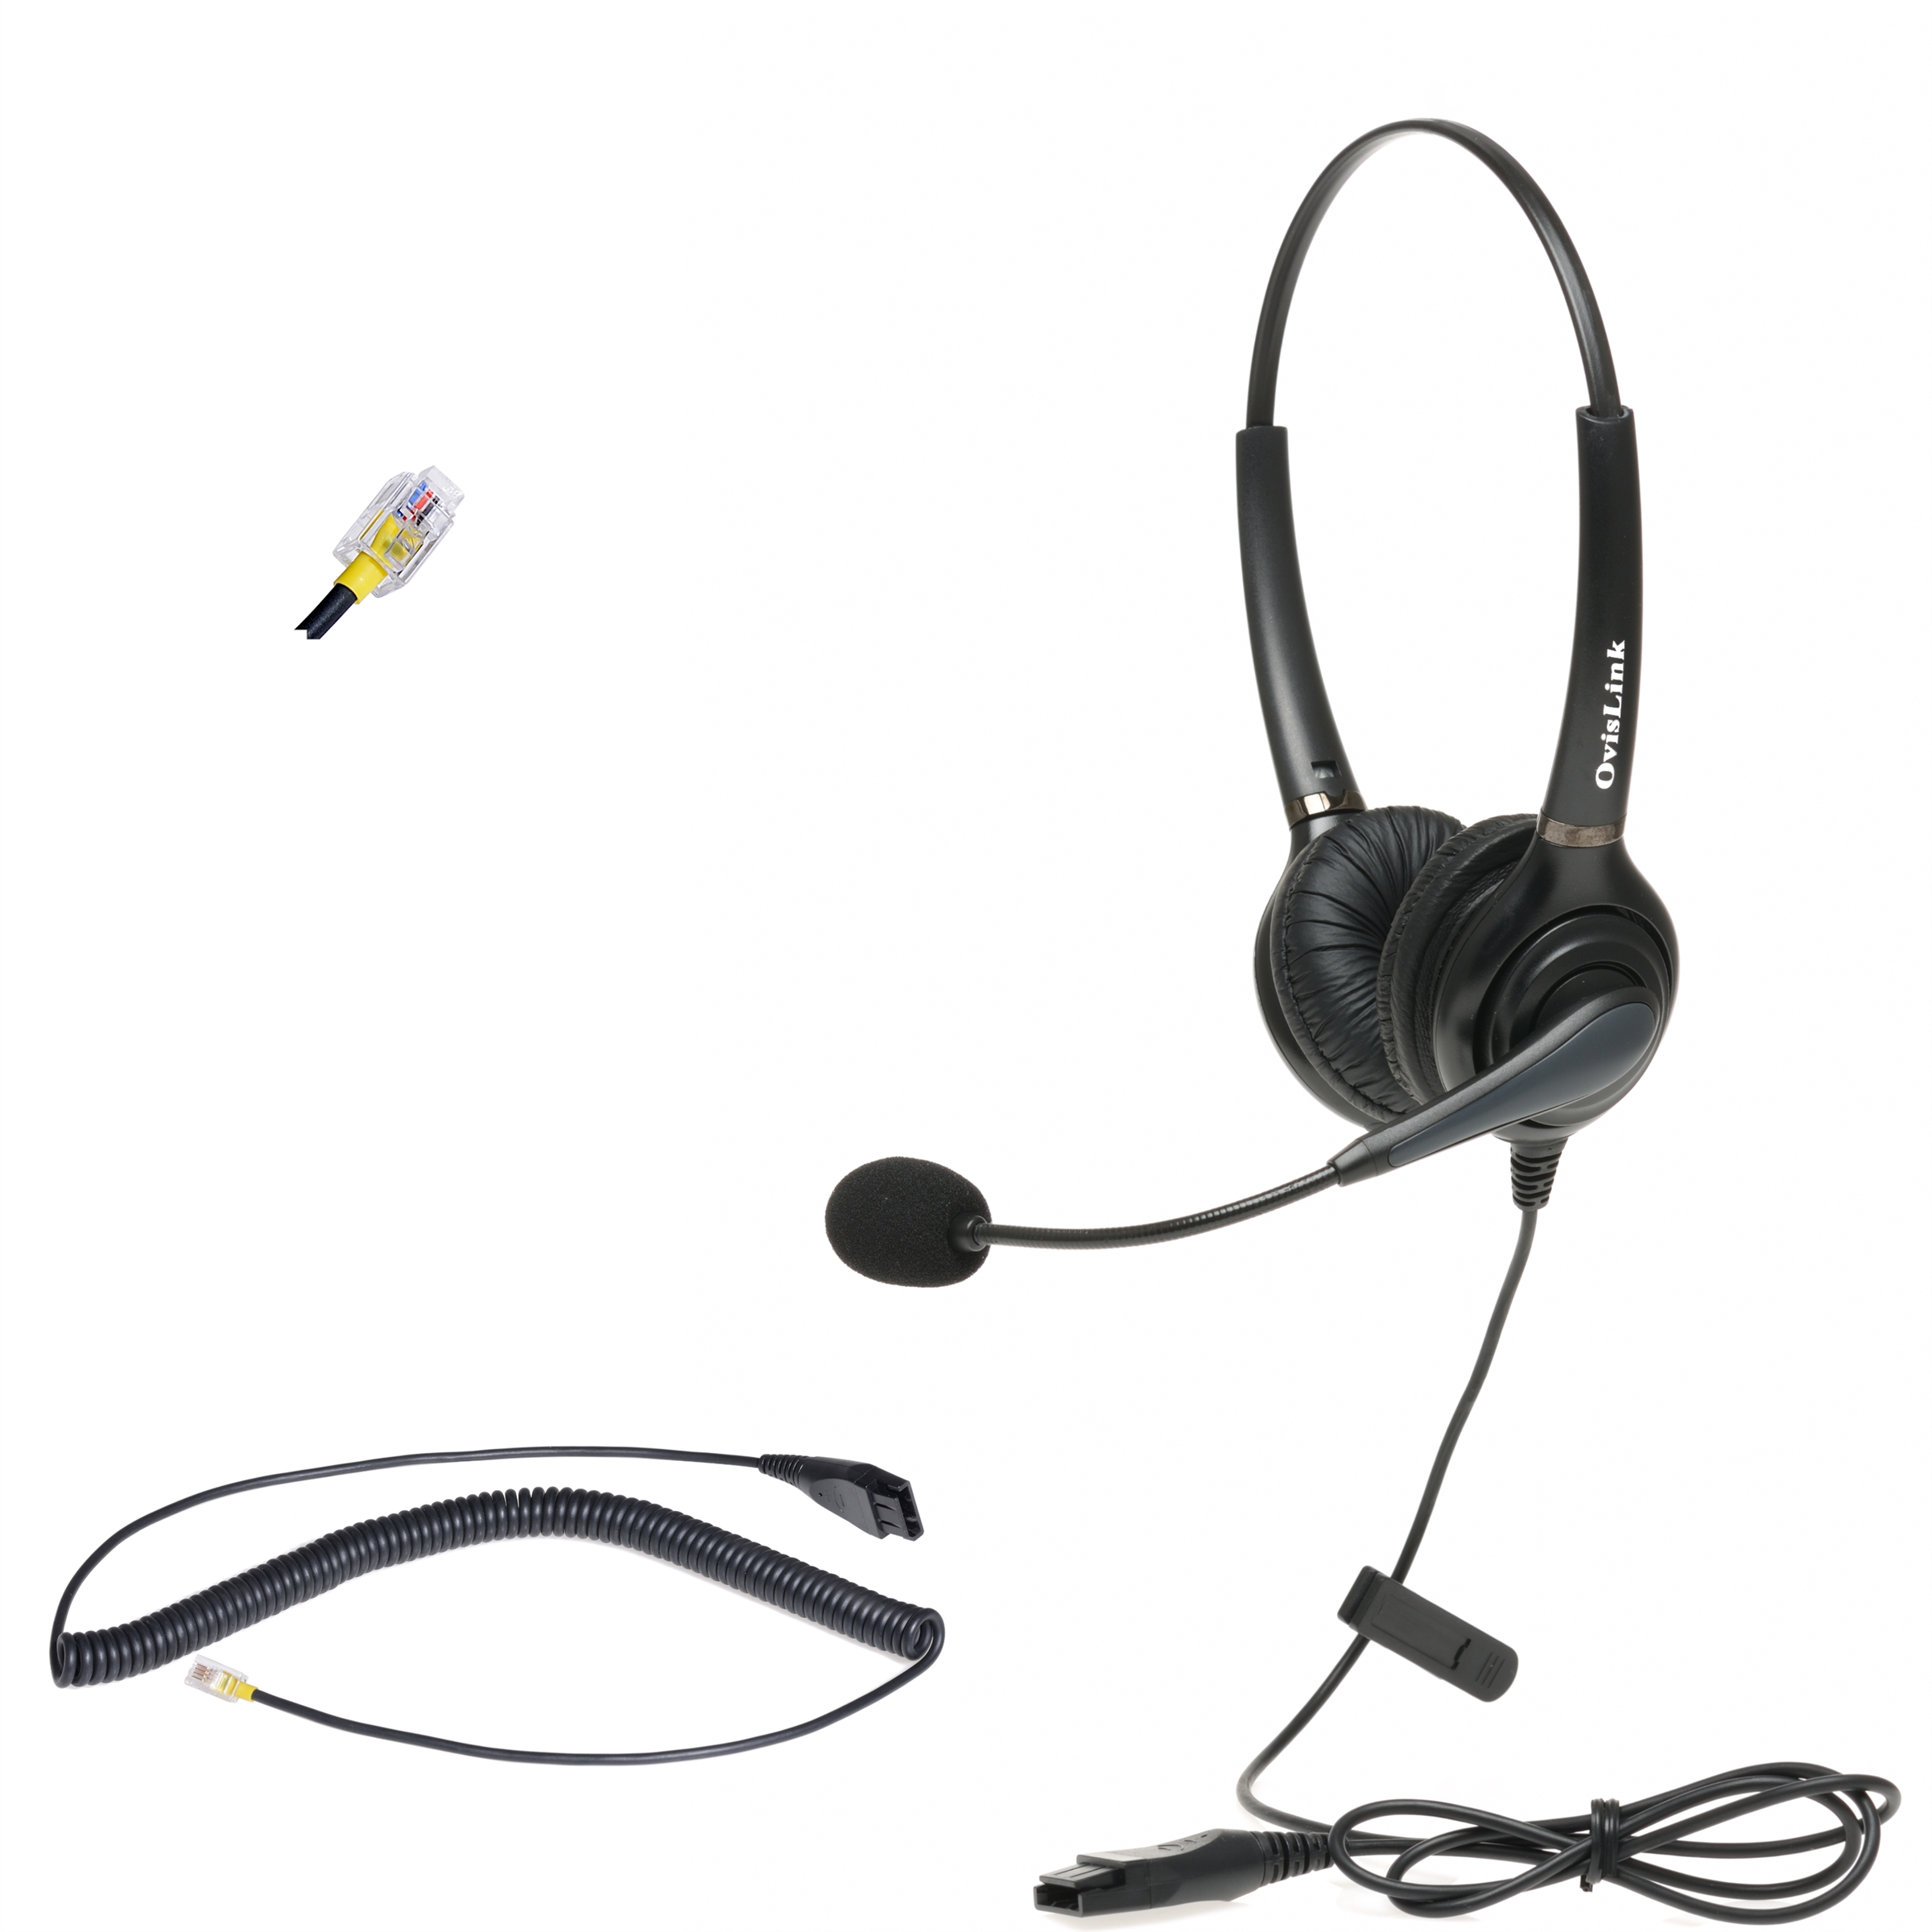 Cisco 7962 Phone Headset Compatible With Cisco Ip Phones With Rj9 Headset Jack